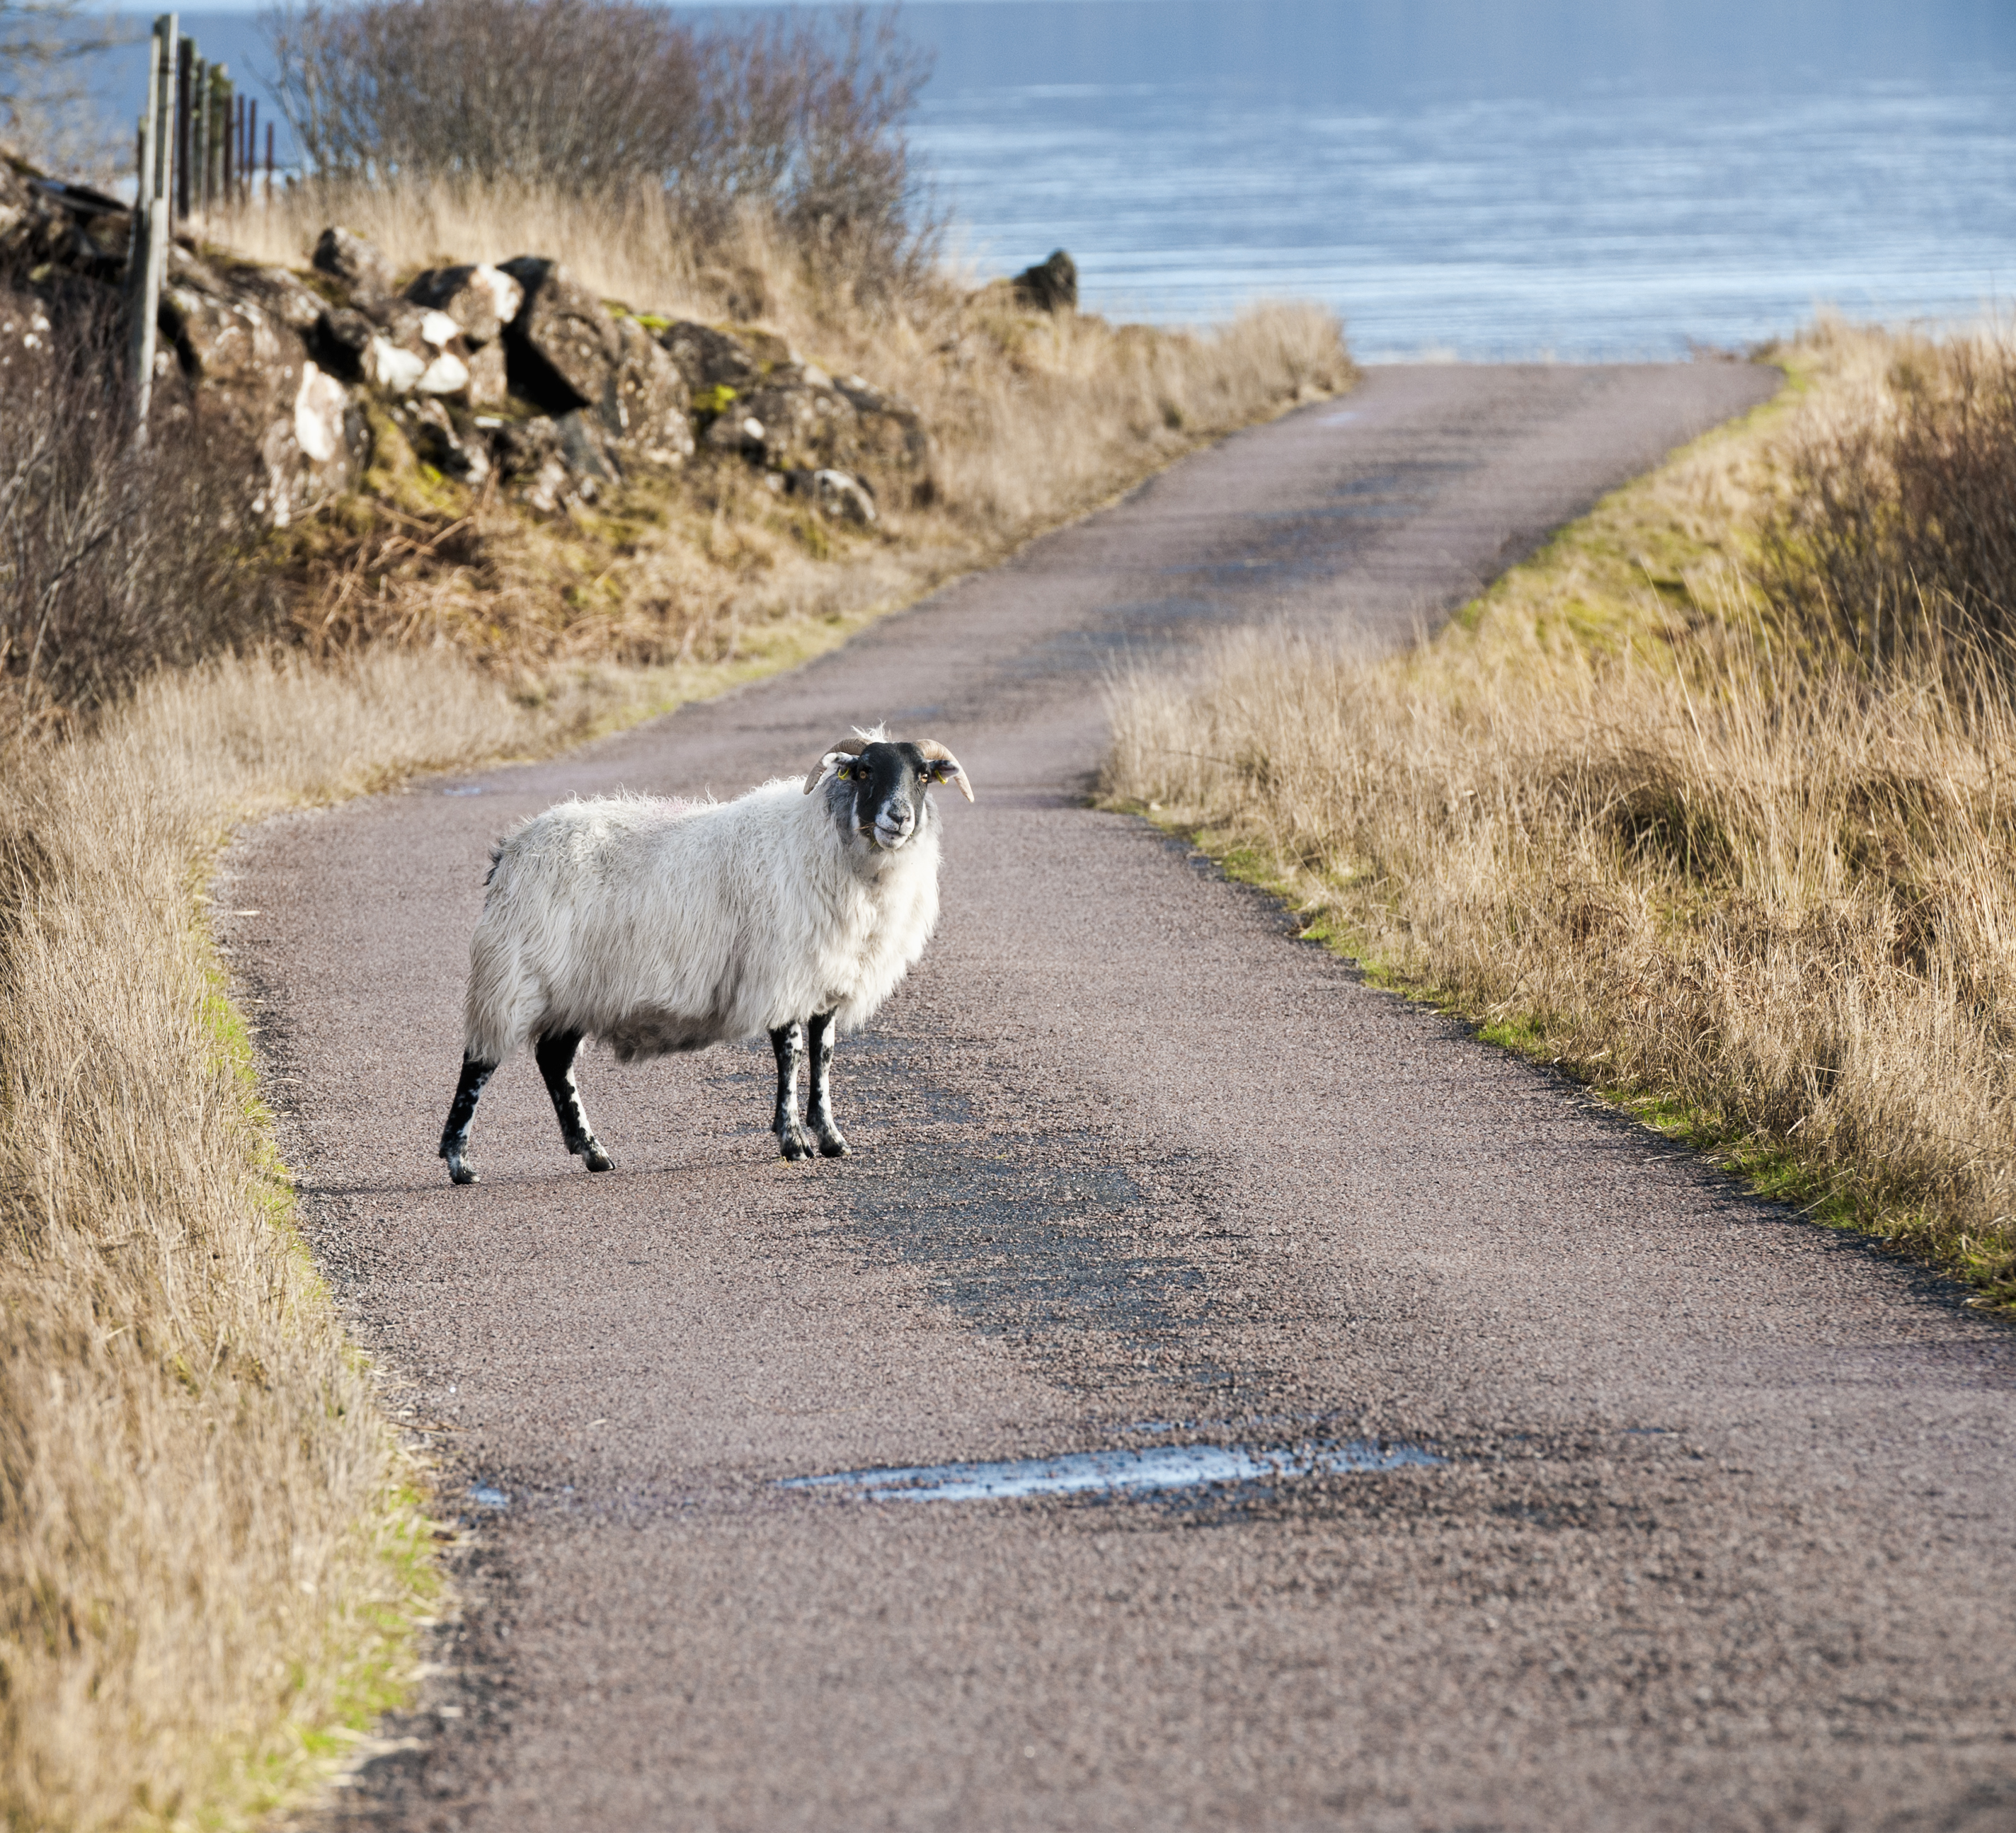 Sheep on country road